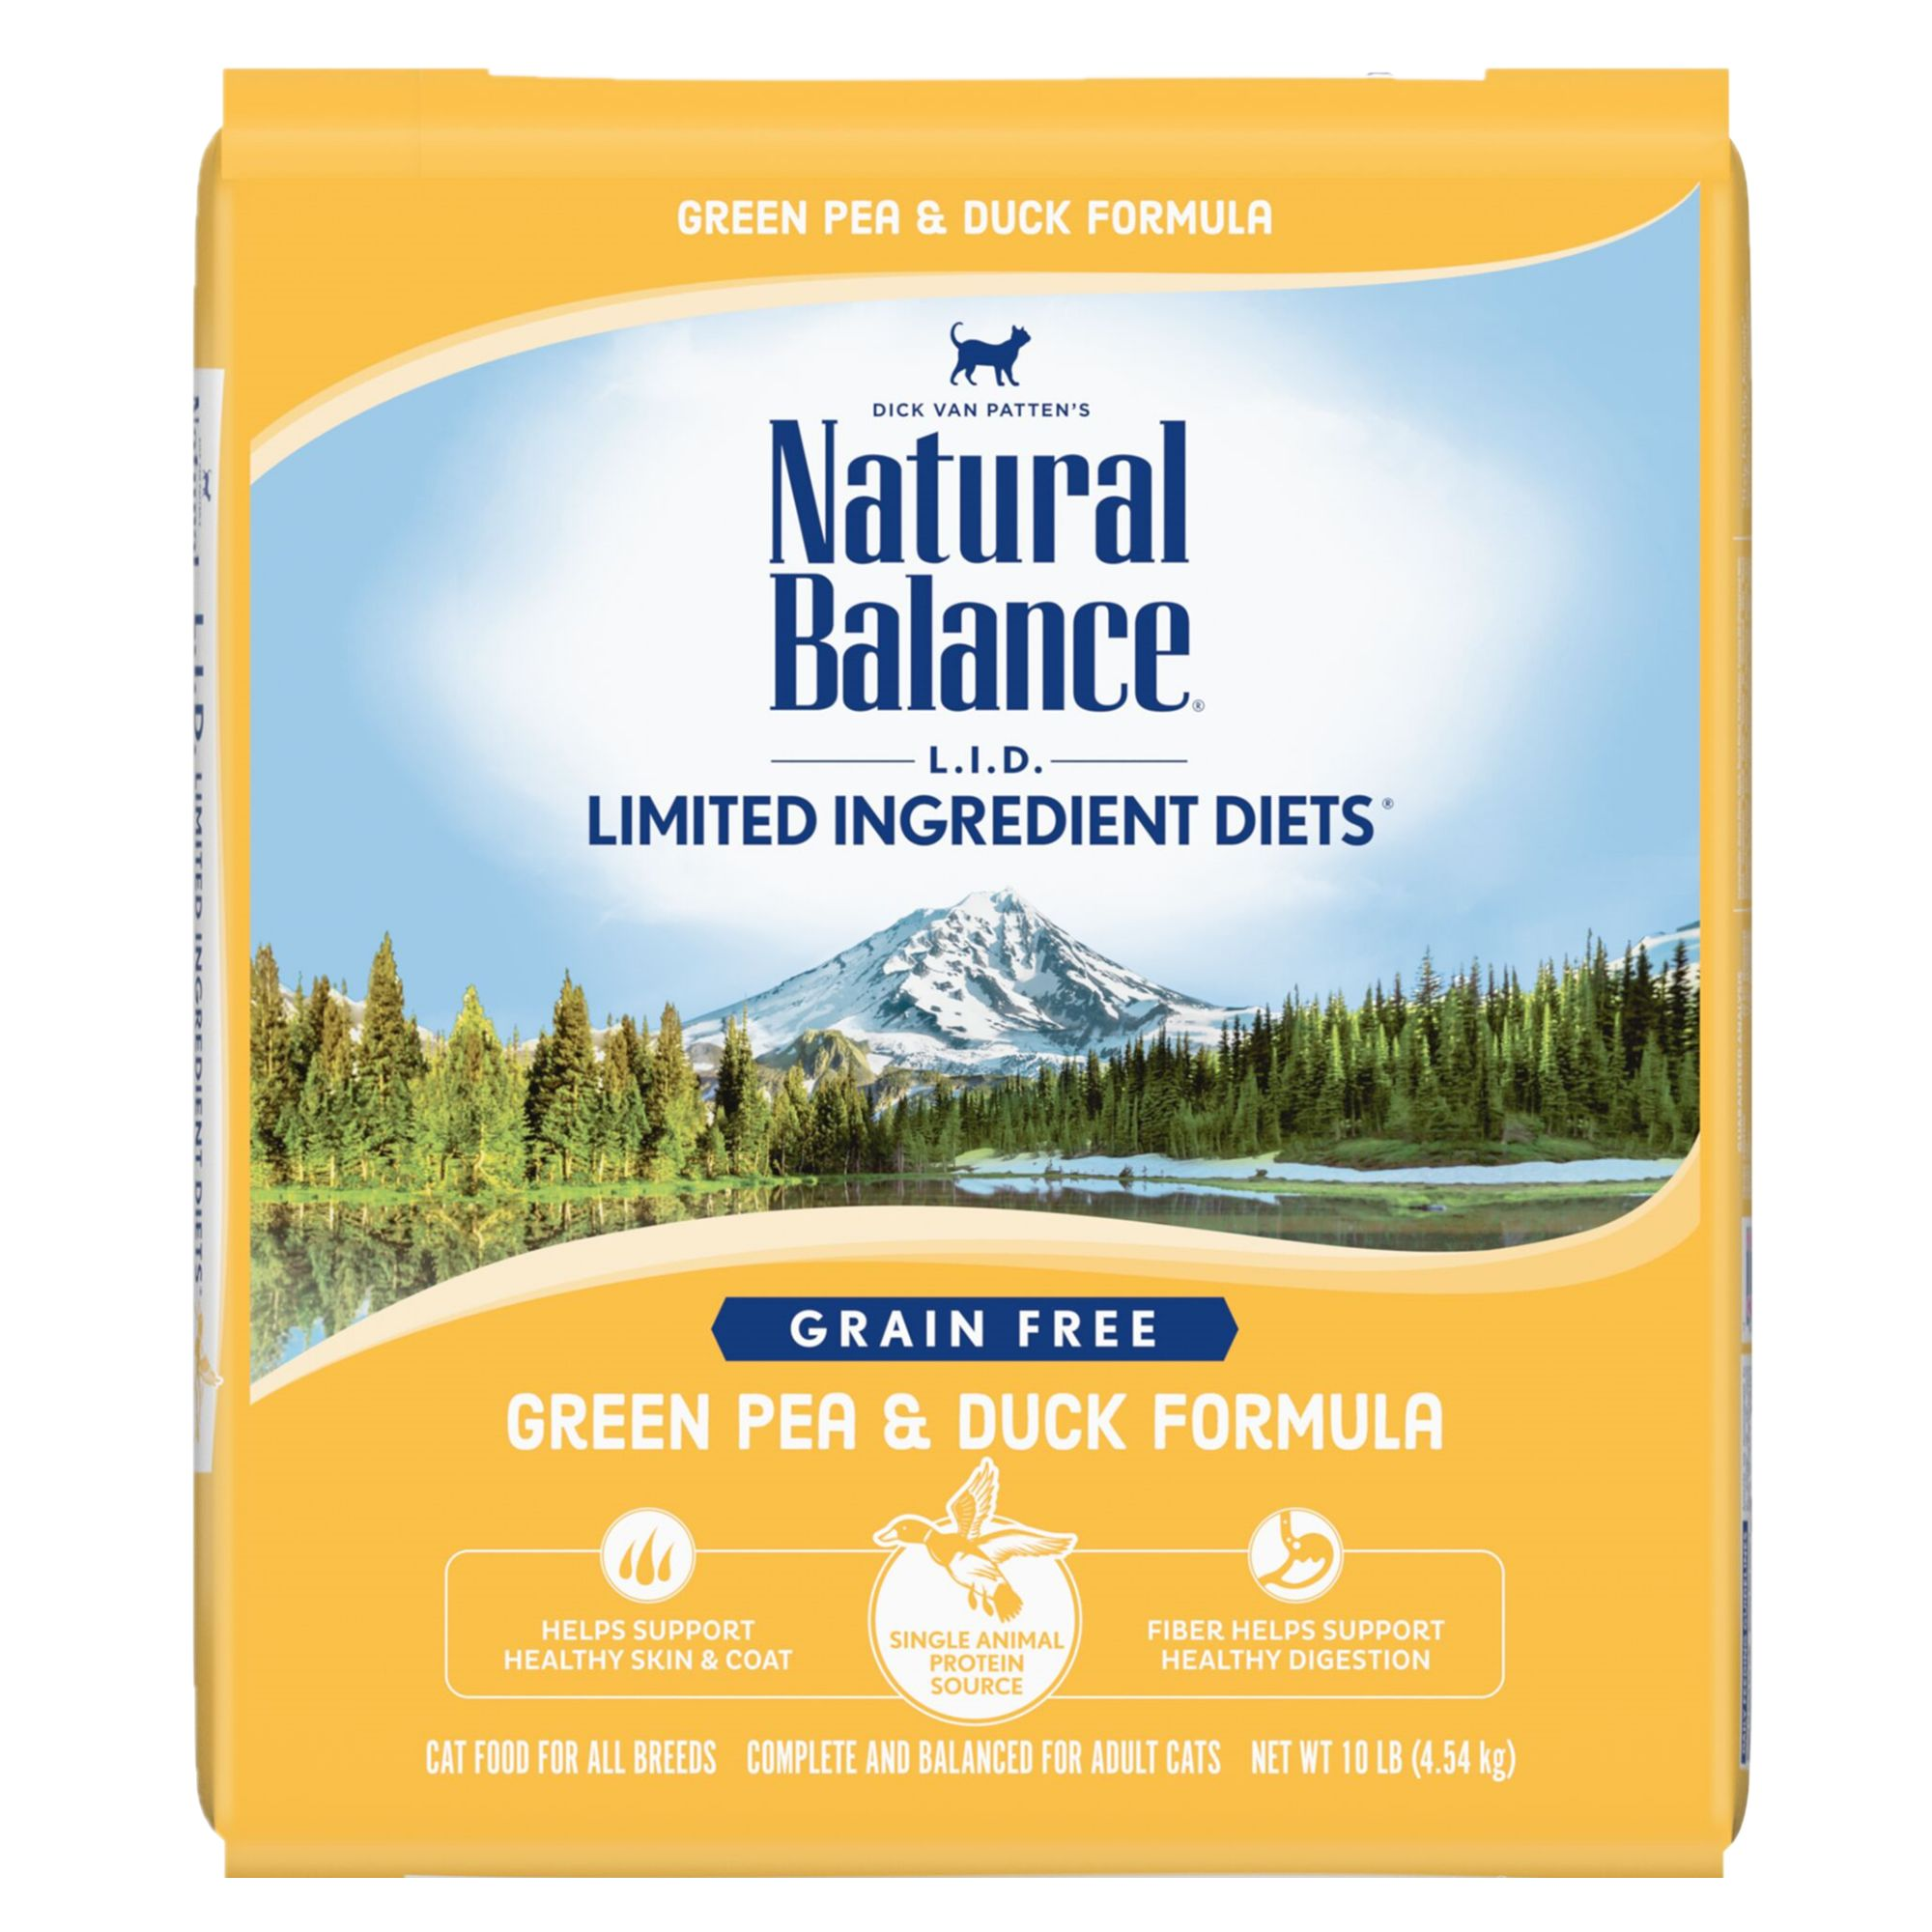 Natural Balance Limited Ingredient Diets Cat Food Grain Free Green Pea And Duck Size 10 Lb Kibble Adult Peas